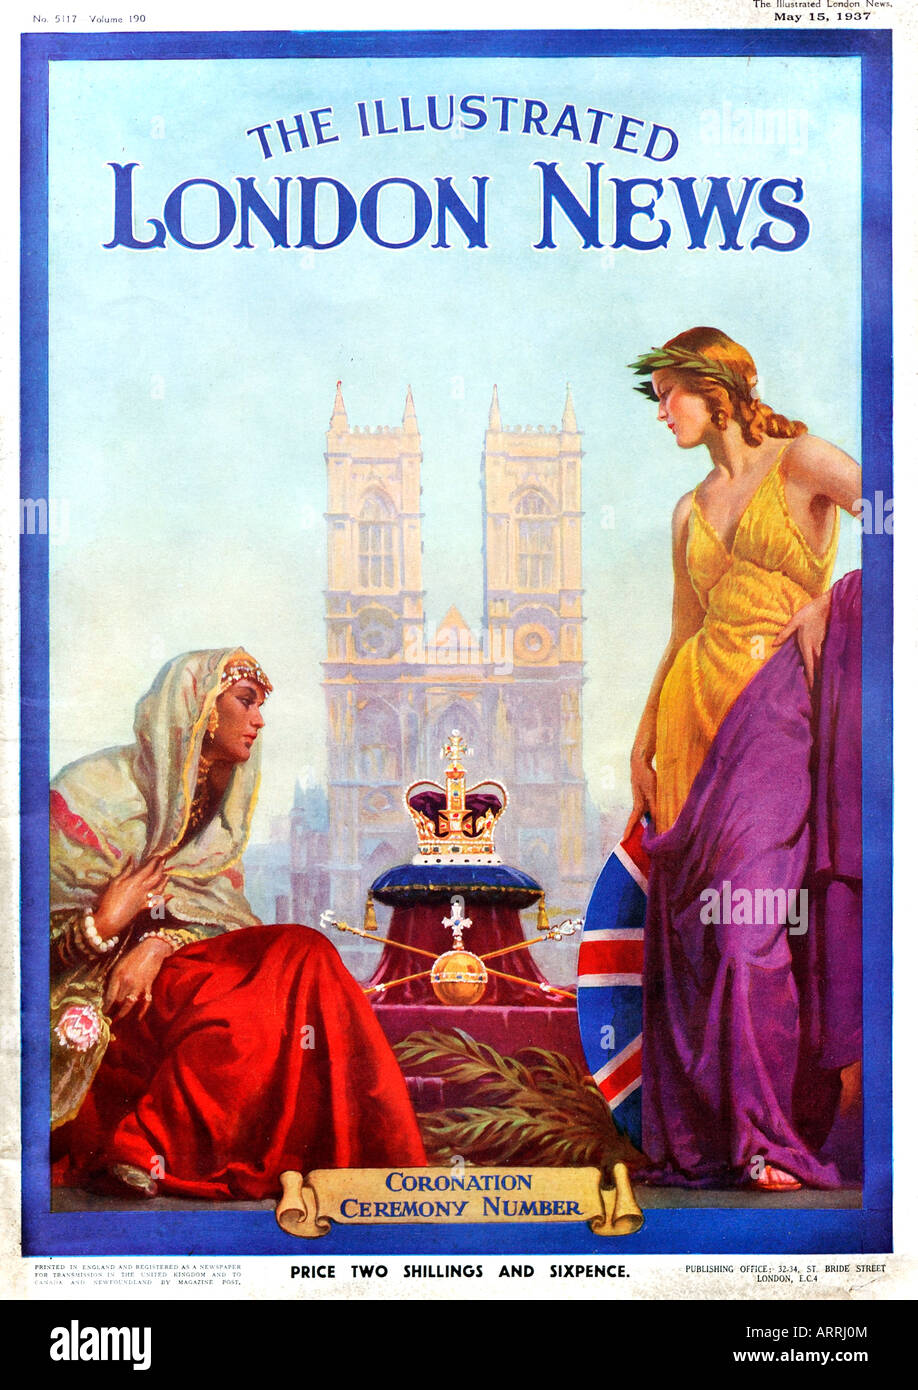 1930s The Illustrated London News Magazine Coronation Ceremony Number Edition 15 May 1937 FOR EDITORIAL USE ONLY - Stock Image